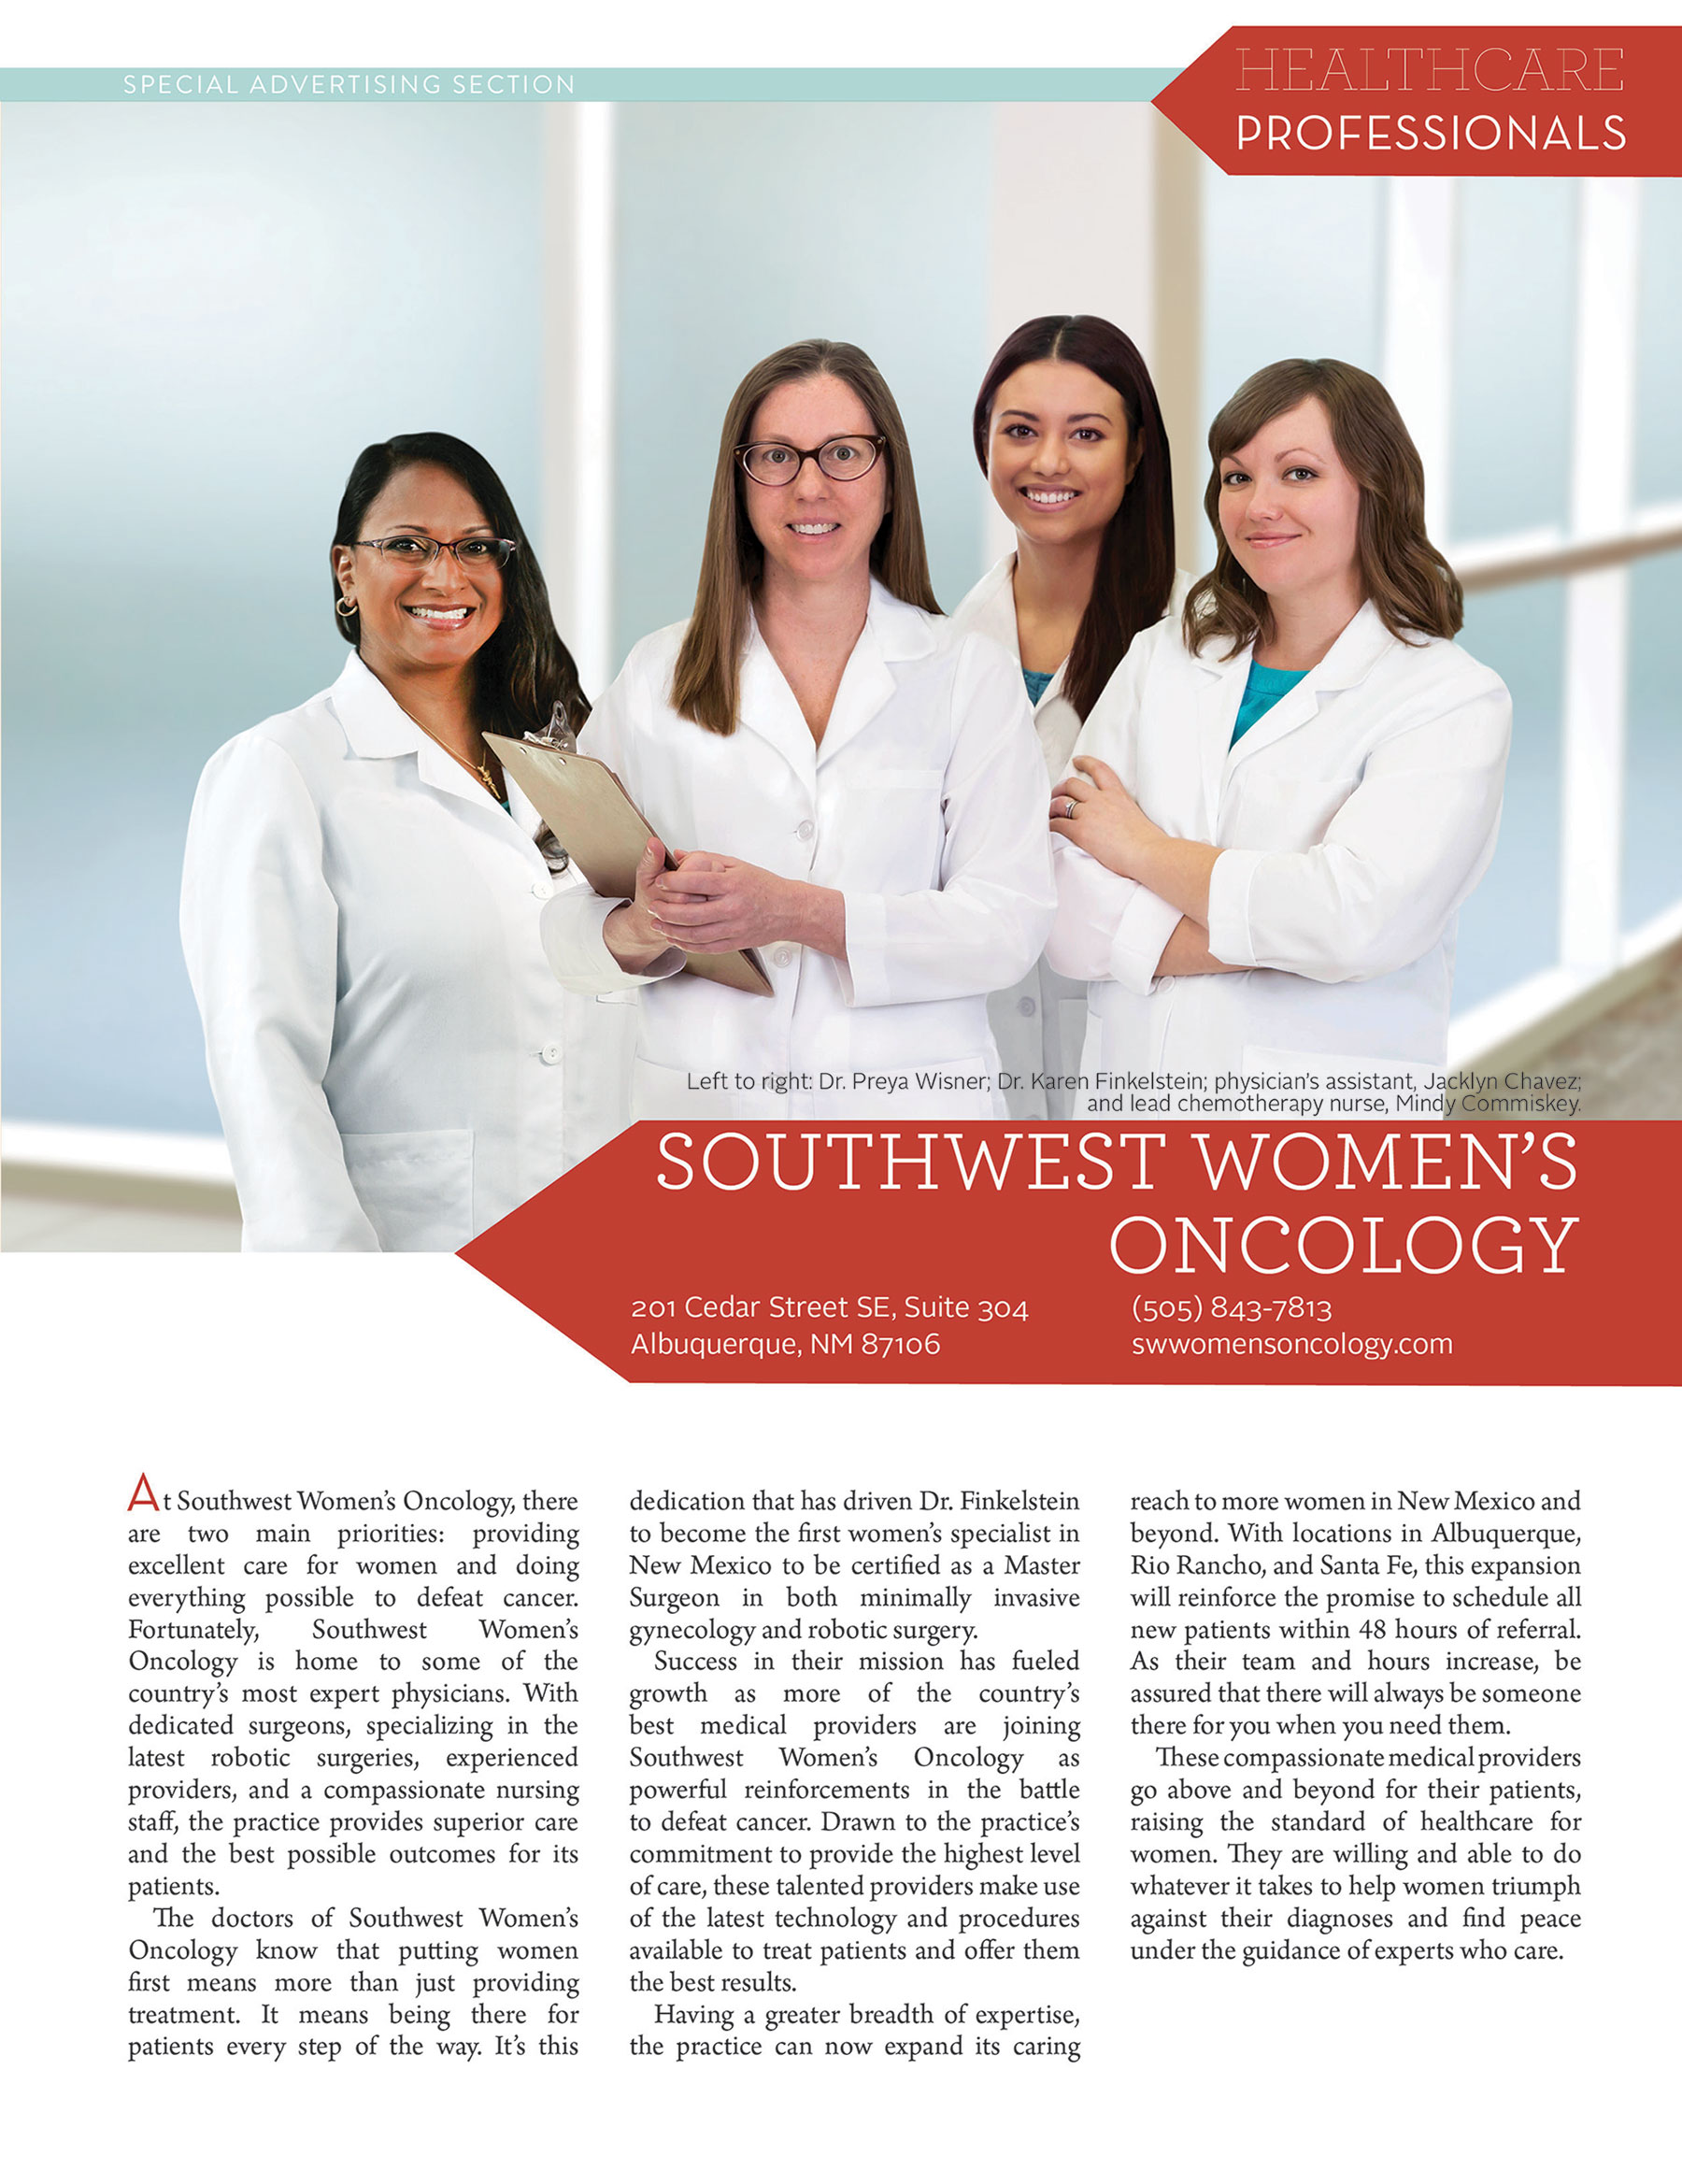 gynecologic oncology professionals